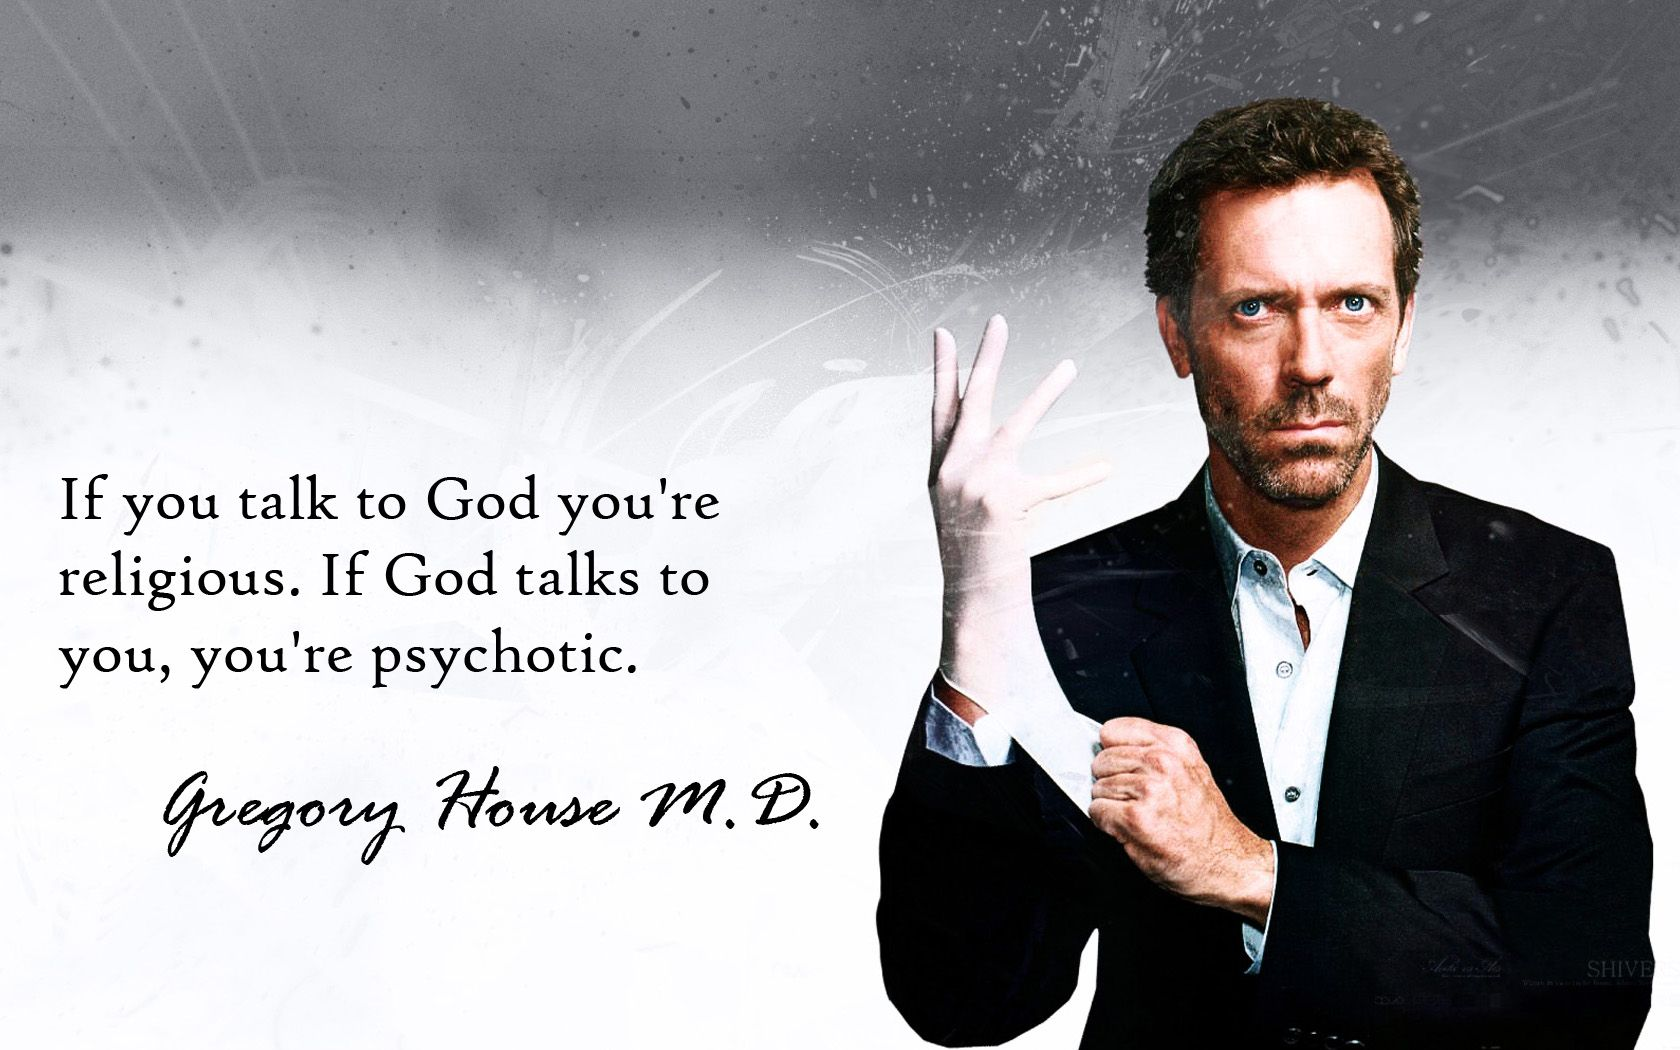 Dr House Quotes And Sayings 1680 X 1050 Wallpapers